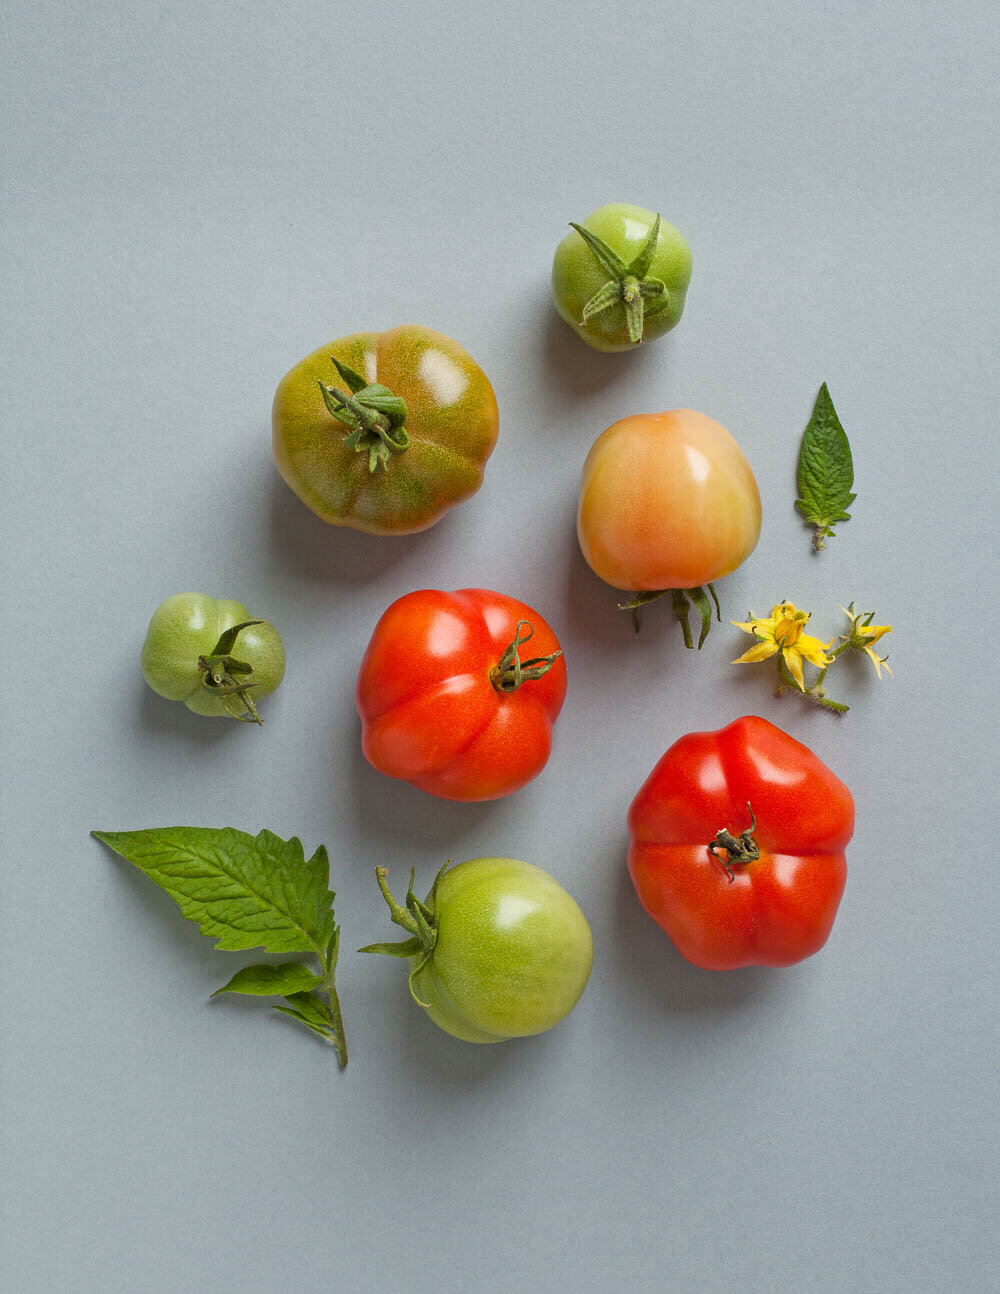 tomatoes on a blue /grey paper background